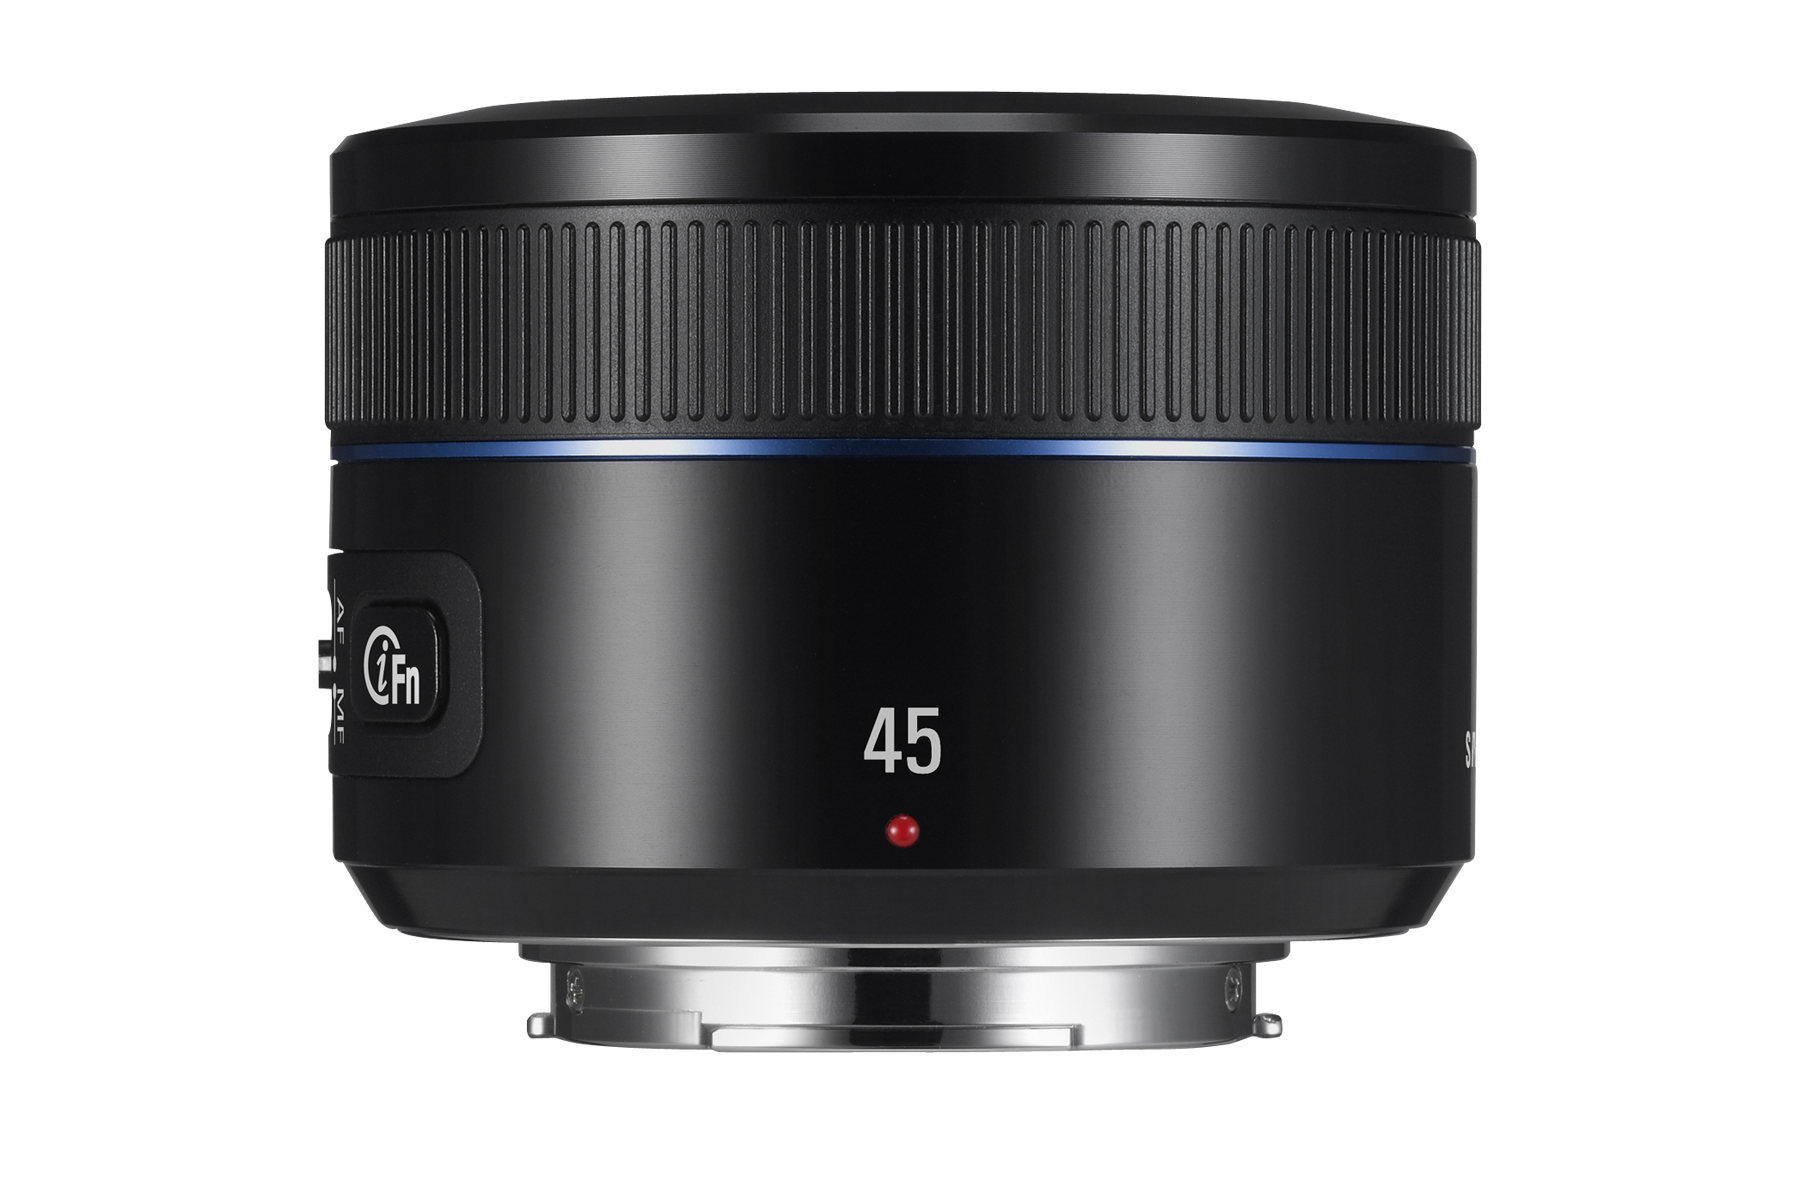 S45ANB 45mm F 1.8 Standard Prime Lens with i-Function (Black)